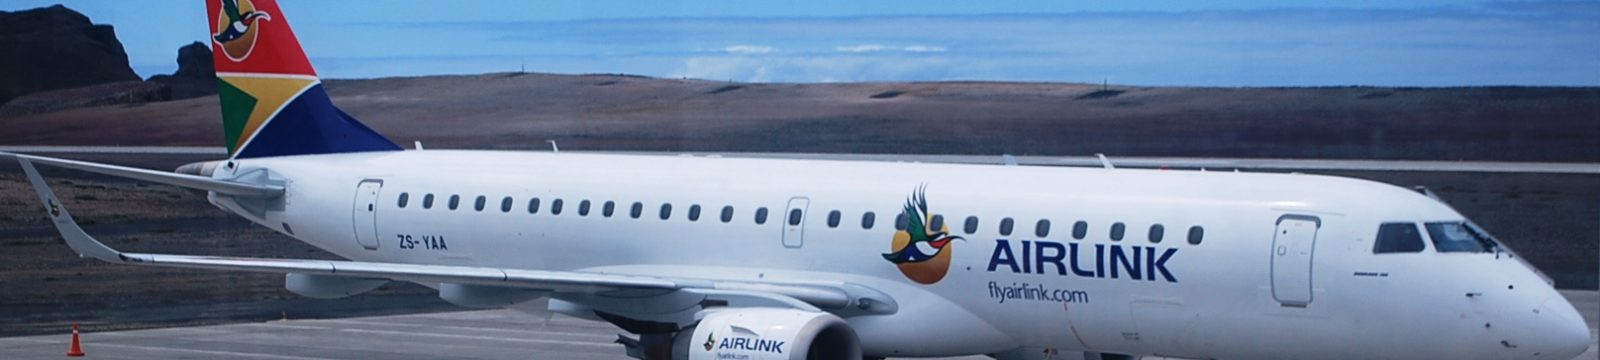 Airlink's Embraer E190-100IGW aircraft at St Helena Airport